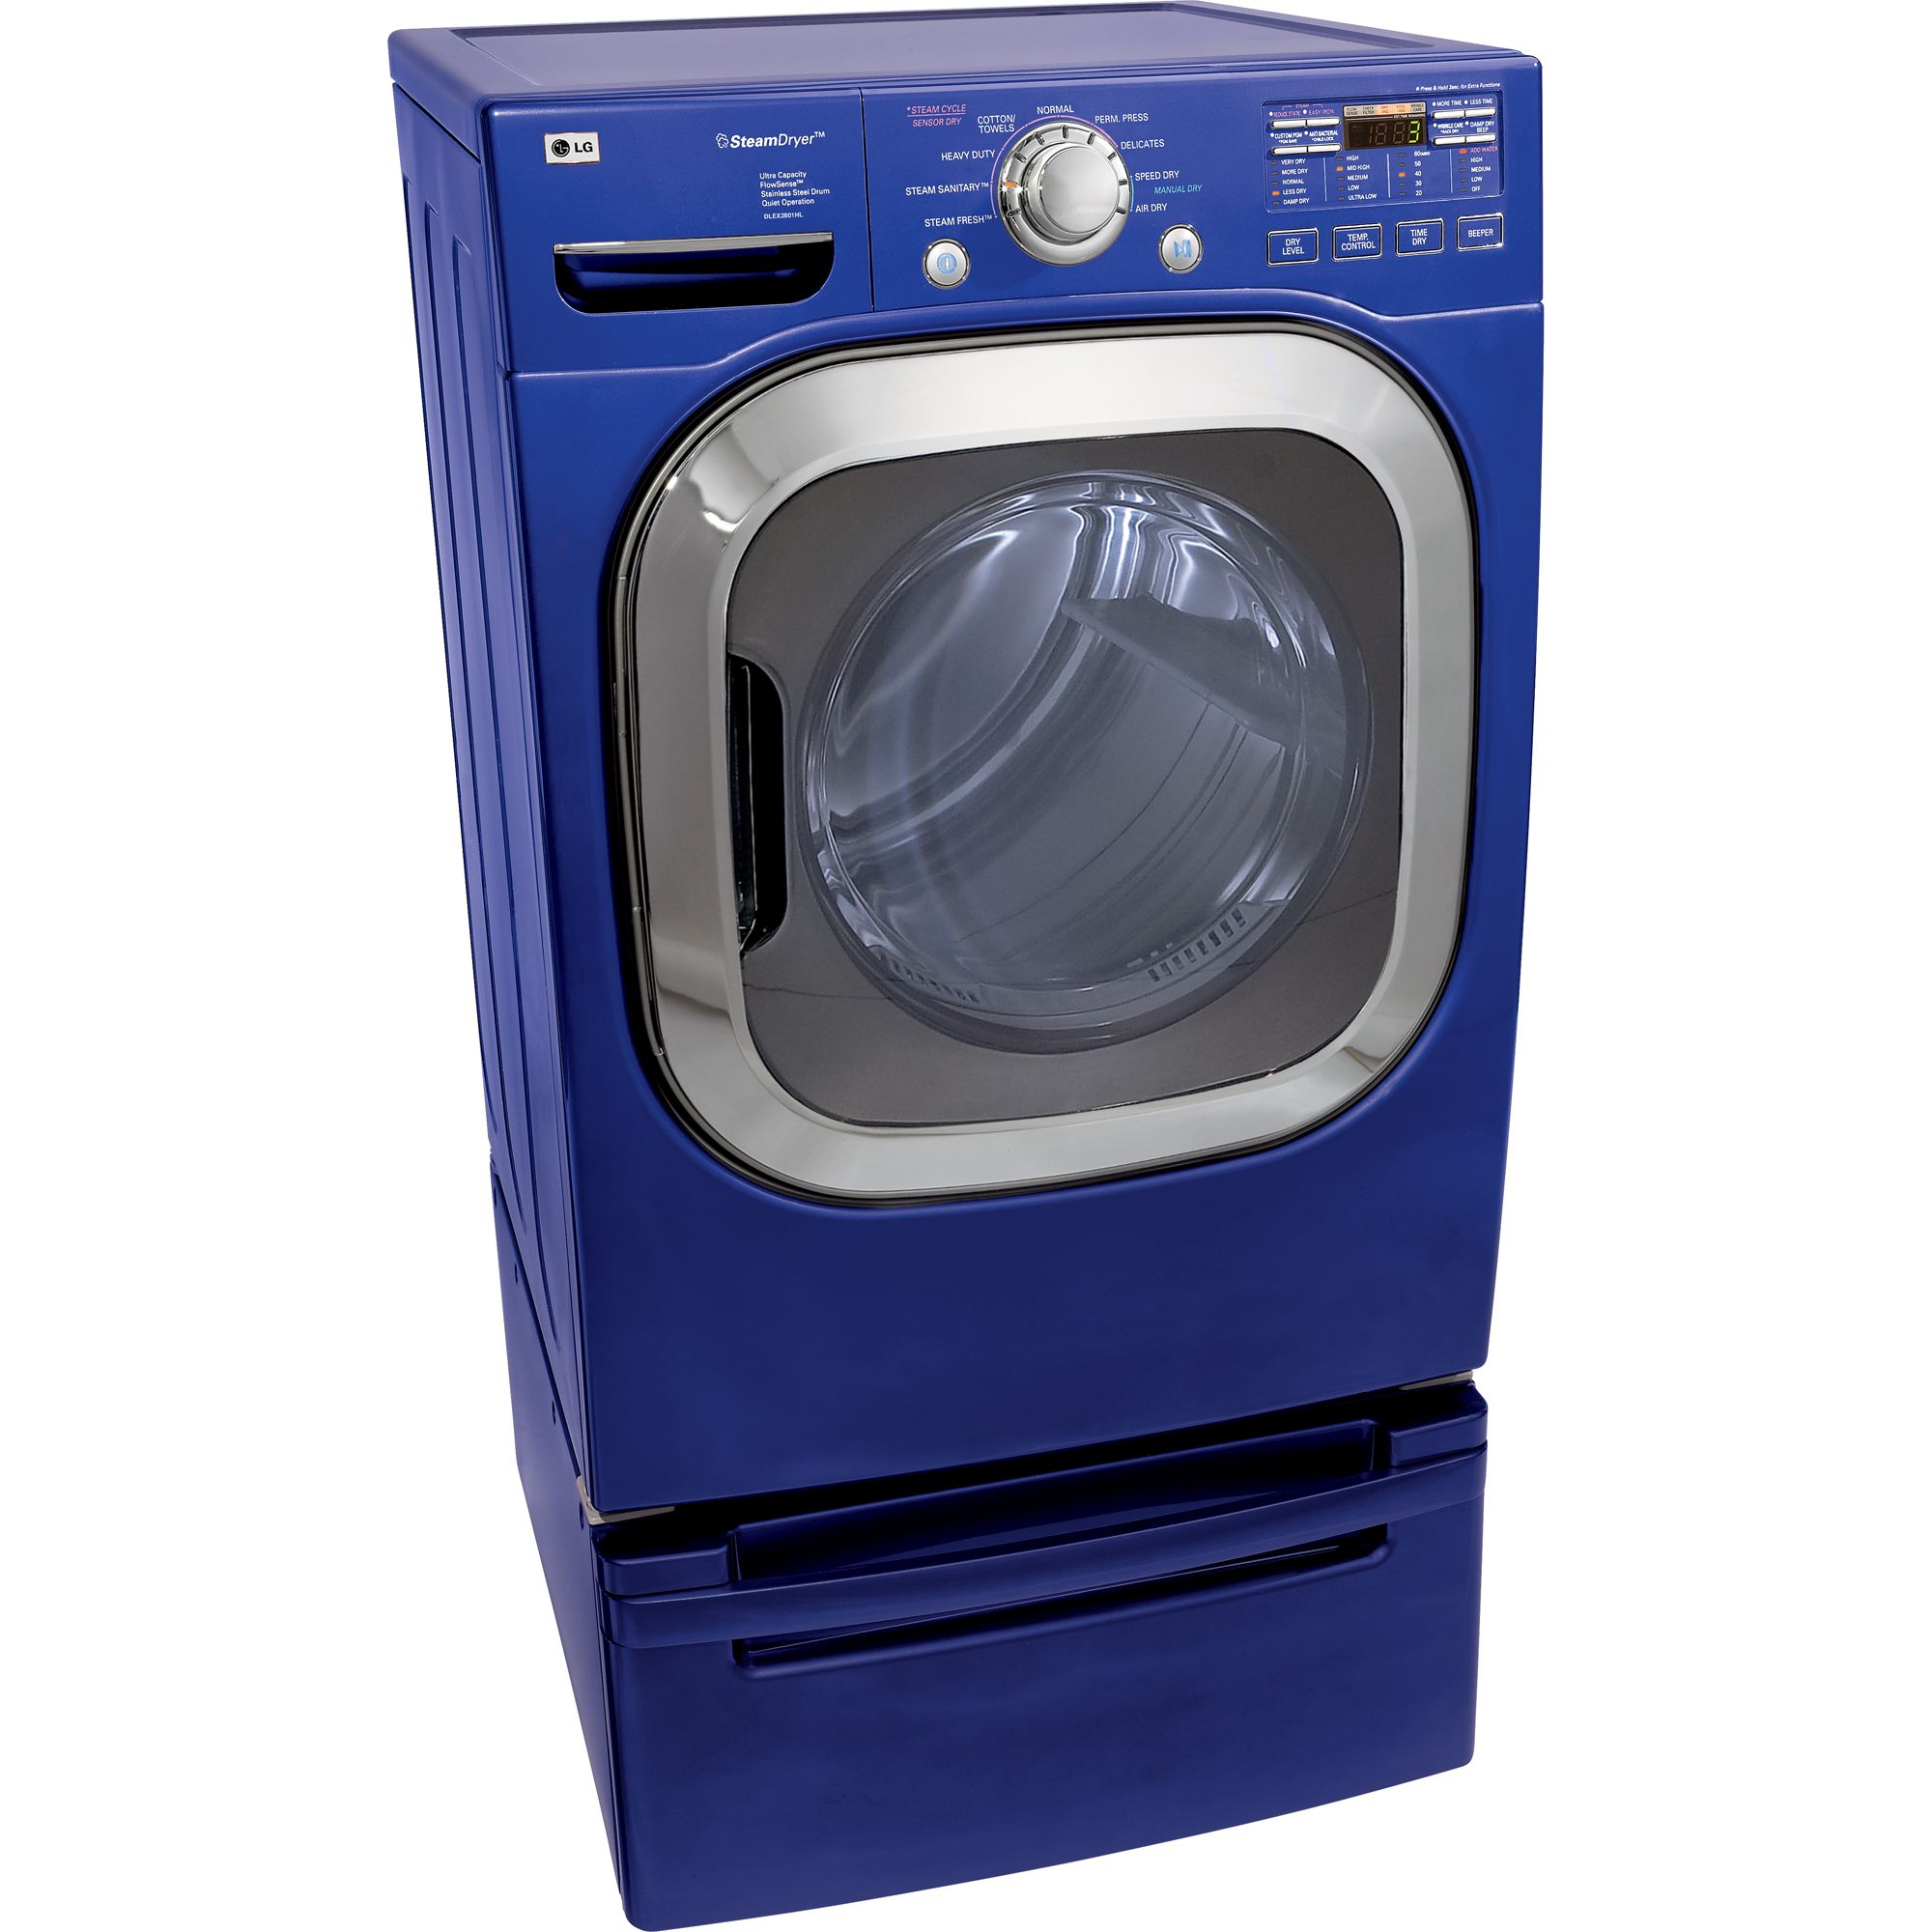 Lg Steamdryer 7.4 Cu. Ft. Gas Dryer - Dlgx2802 Appliances Dryers